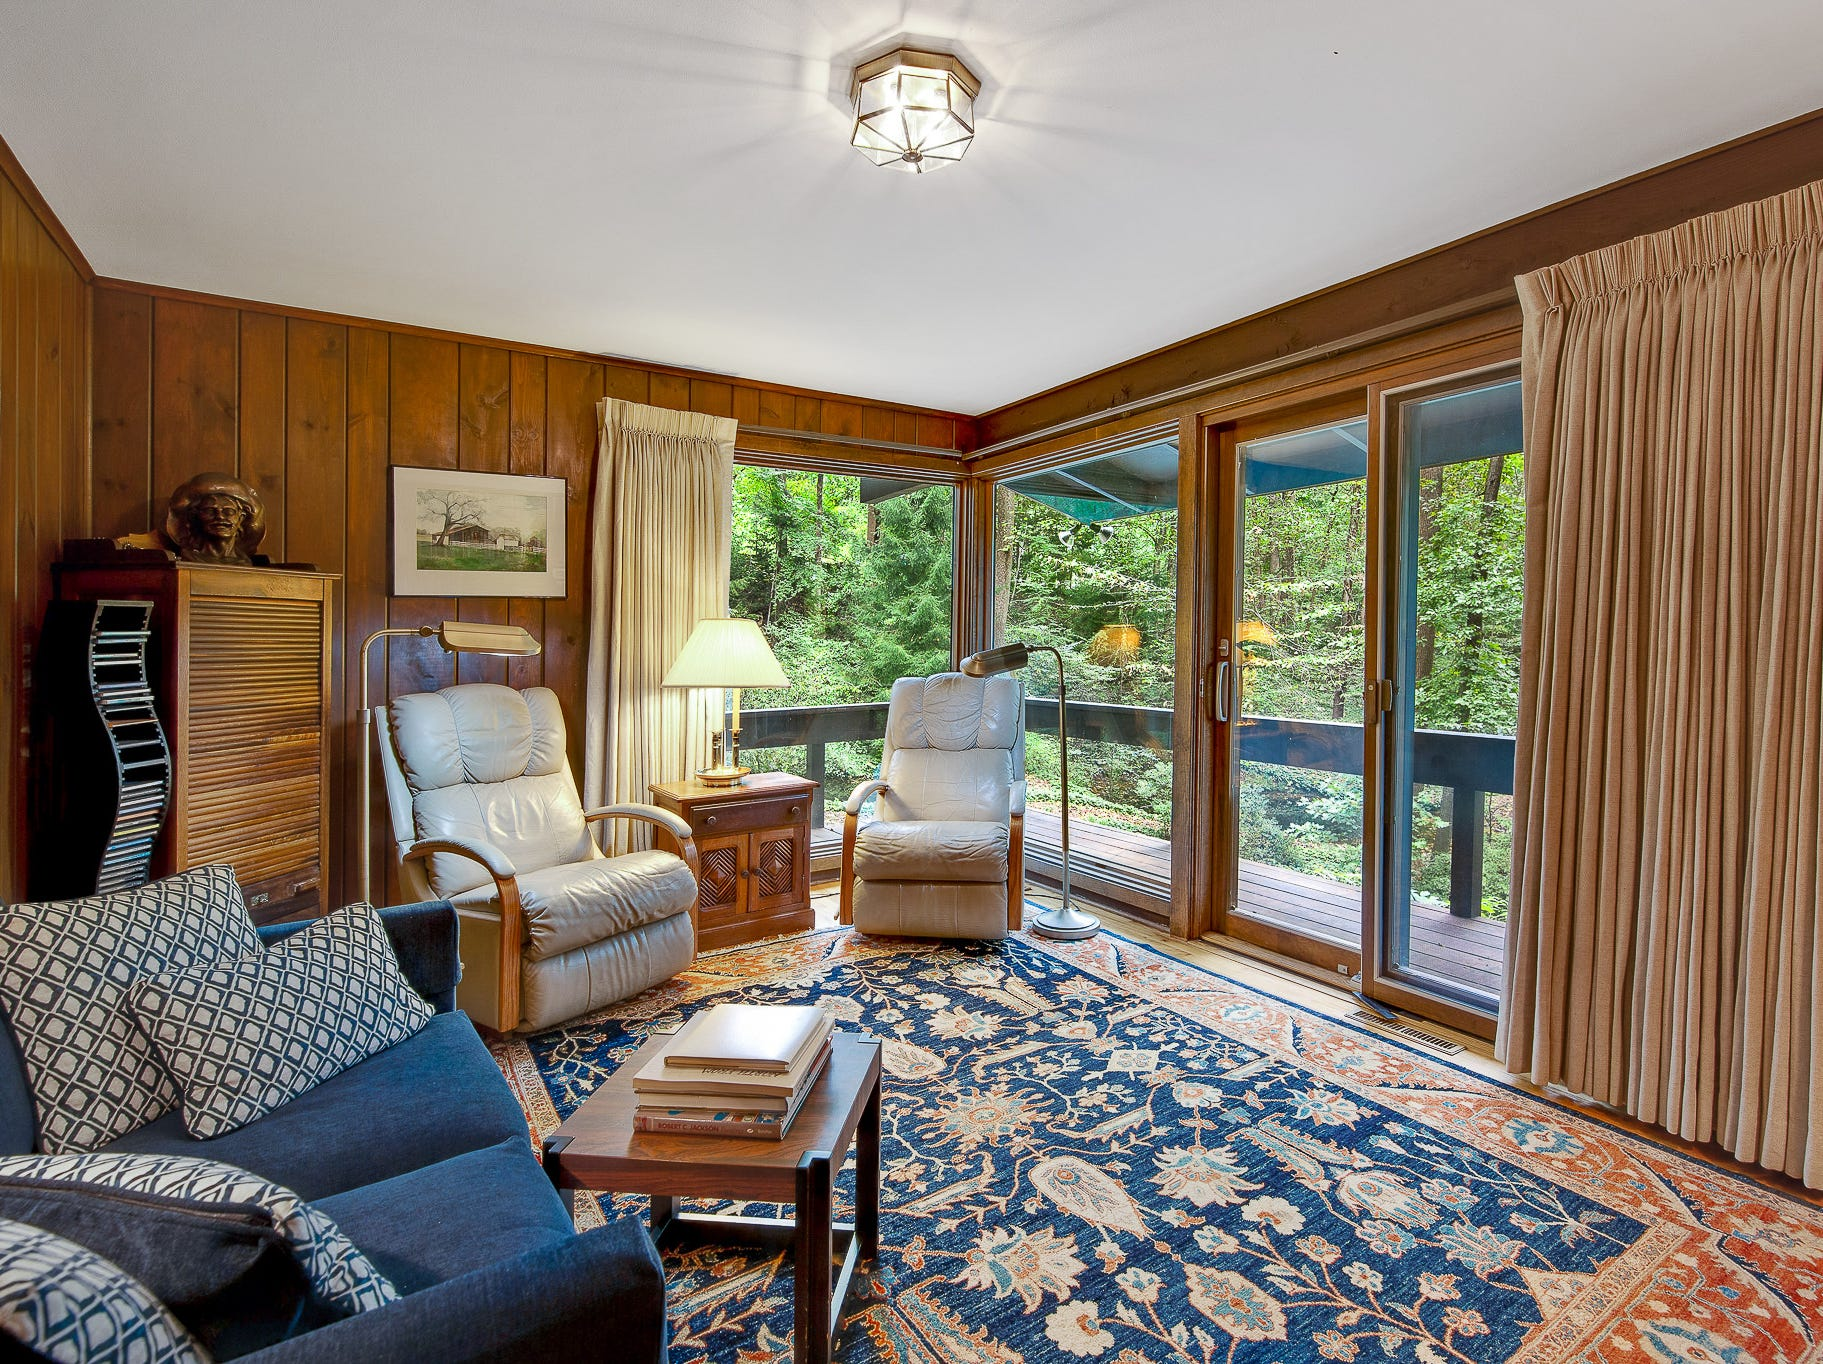 A den at 110 Thissell in Greenville retains the original wood paneling that helps it melt into the scenery.